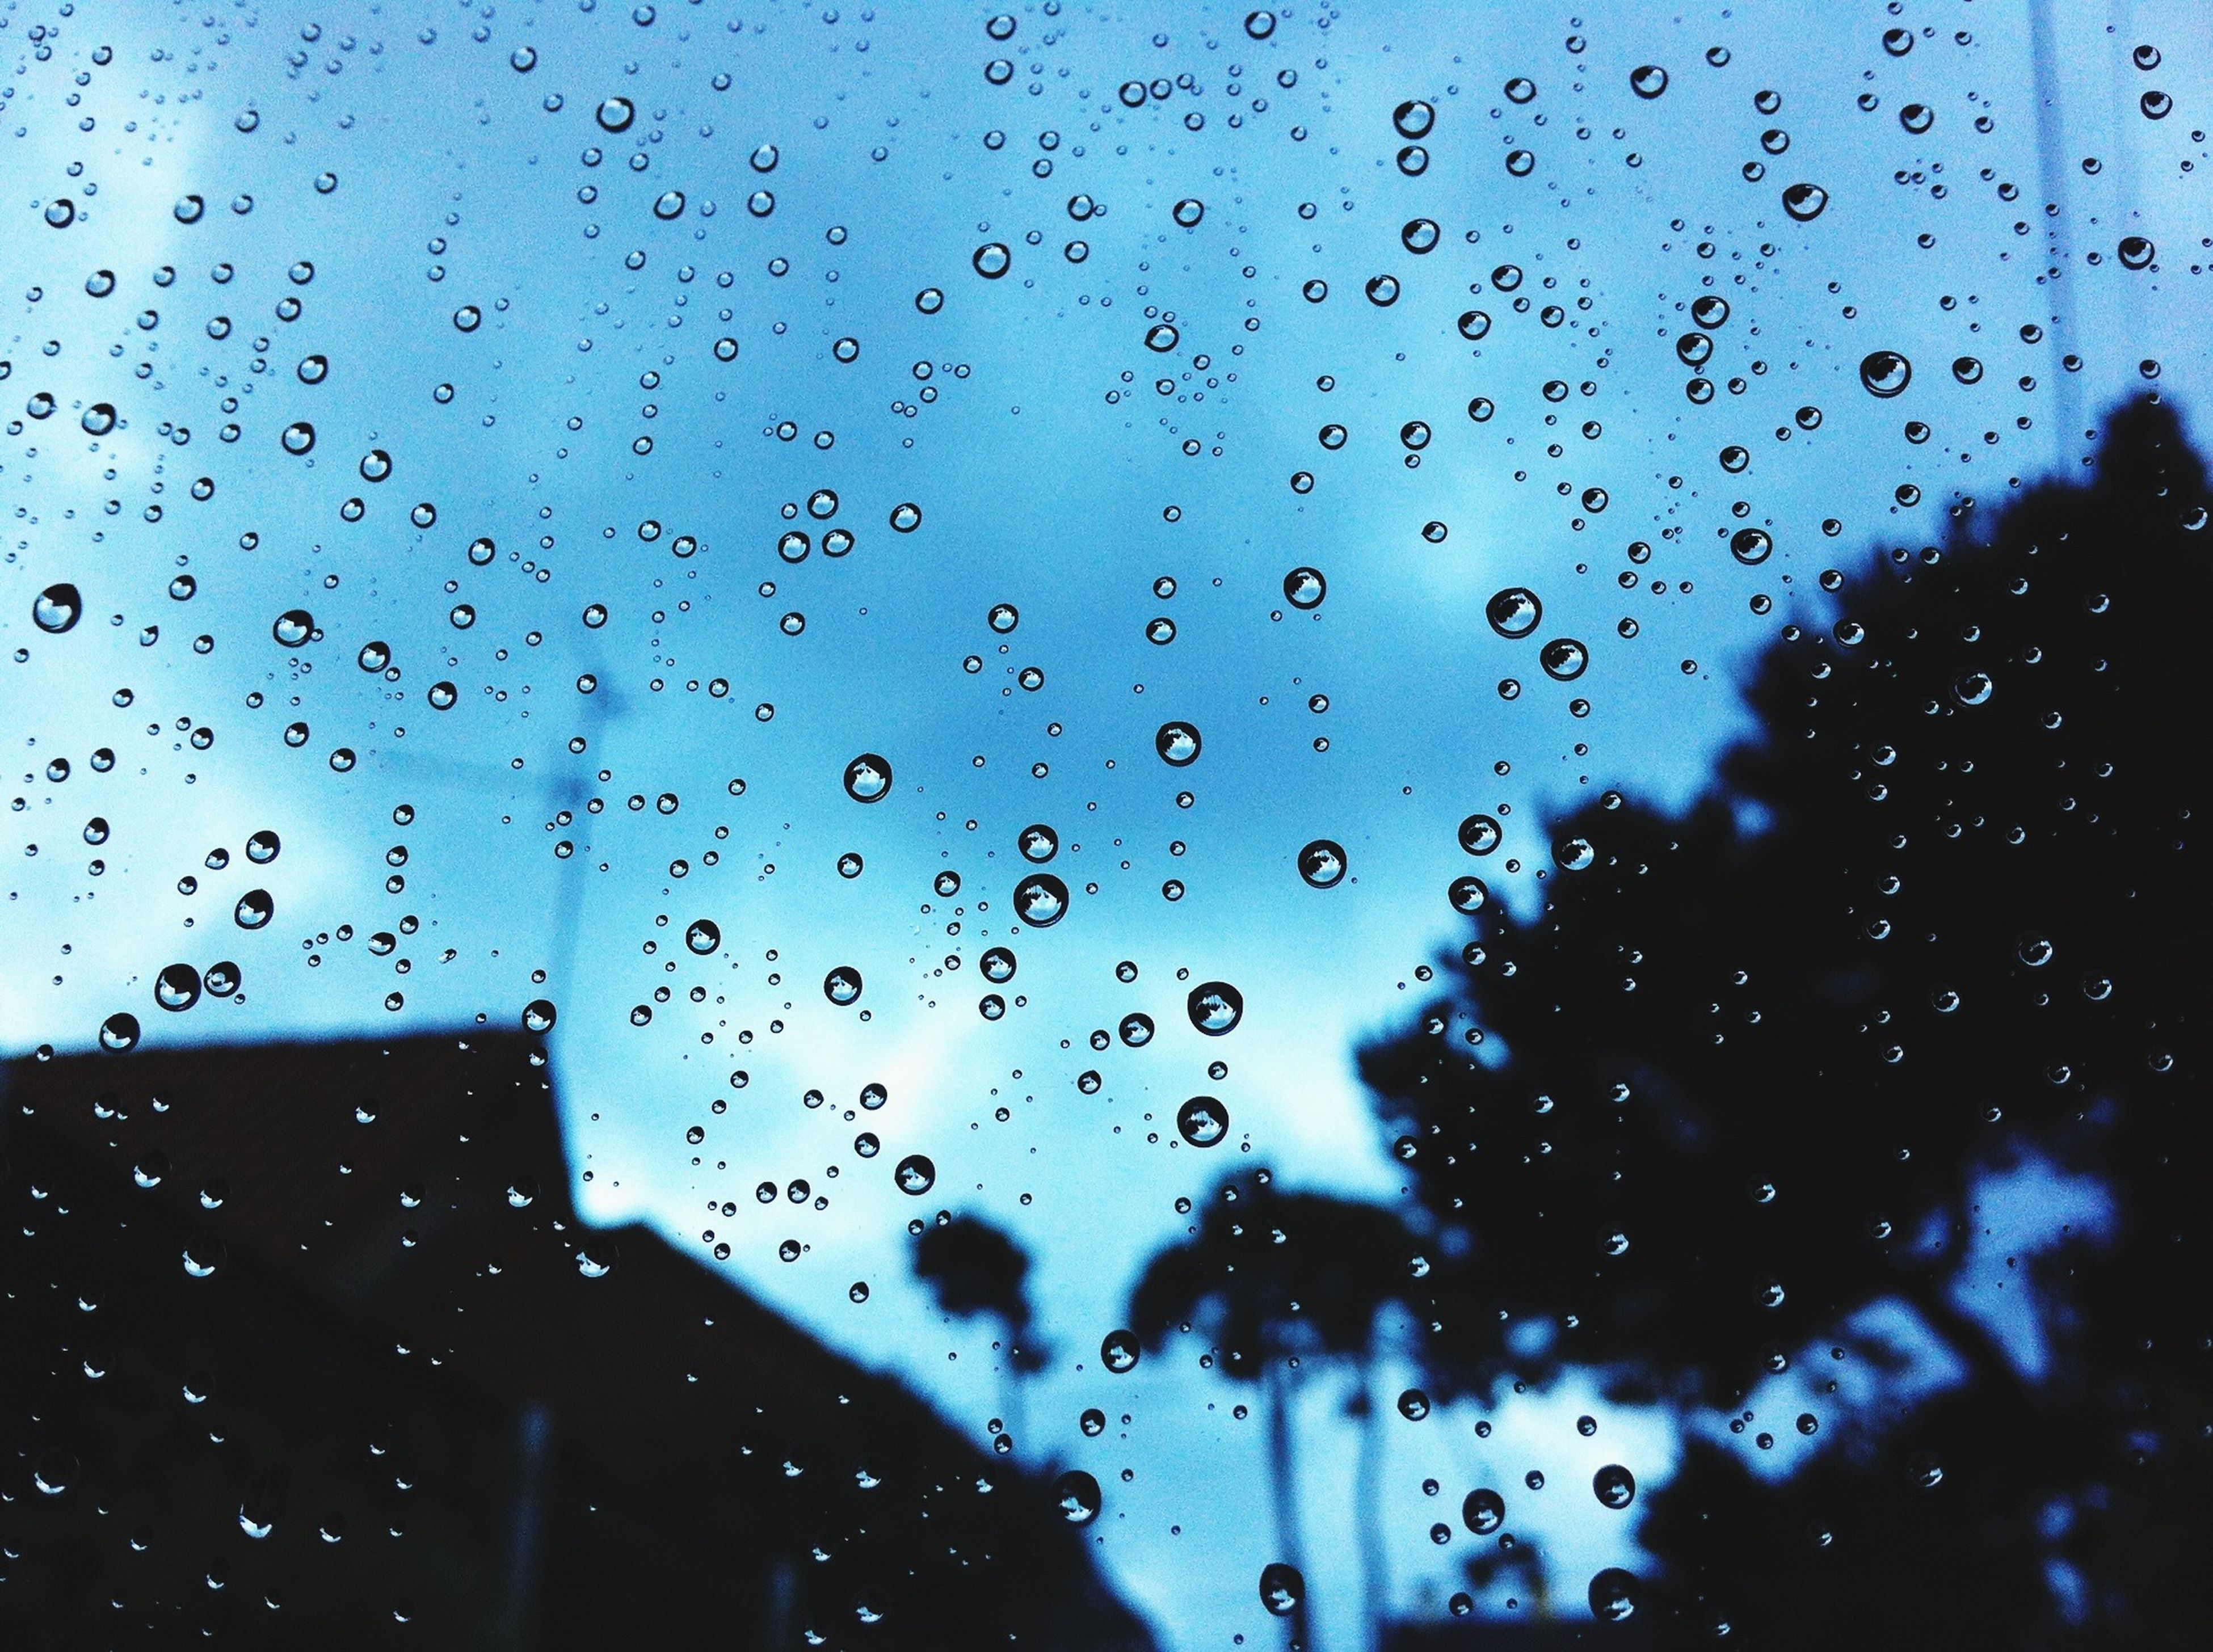 drop, wet, window, rain, transparent, indoors, water, glass - material, raindrop, weather, season, sky, glass, transportation, backgrounds, full frame, vehicle interior, focus on foreground, monsoon, droplet